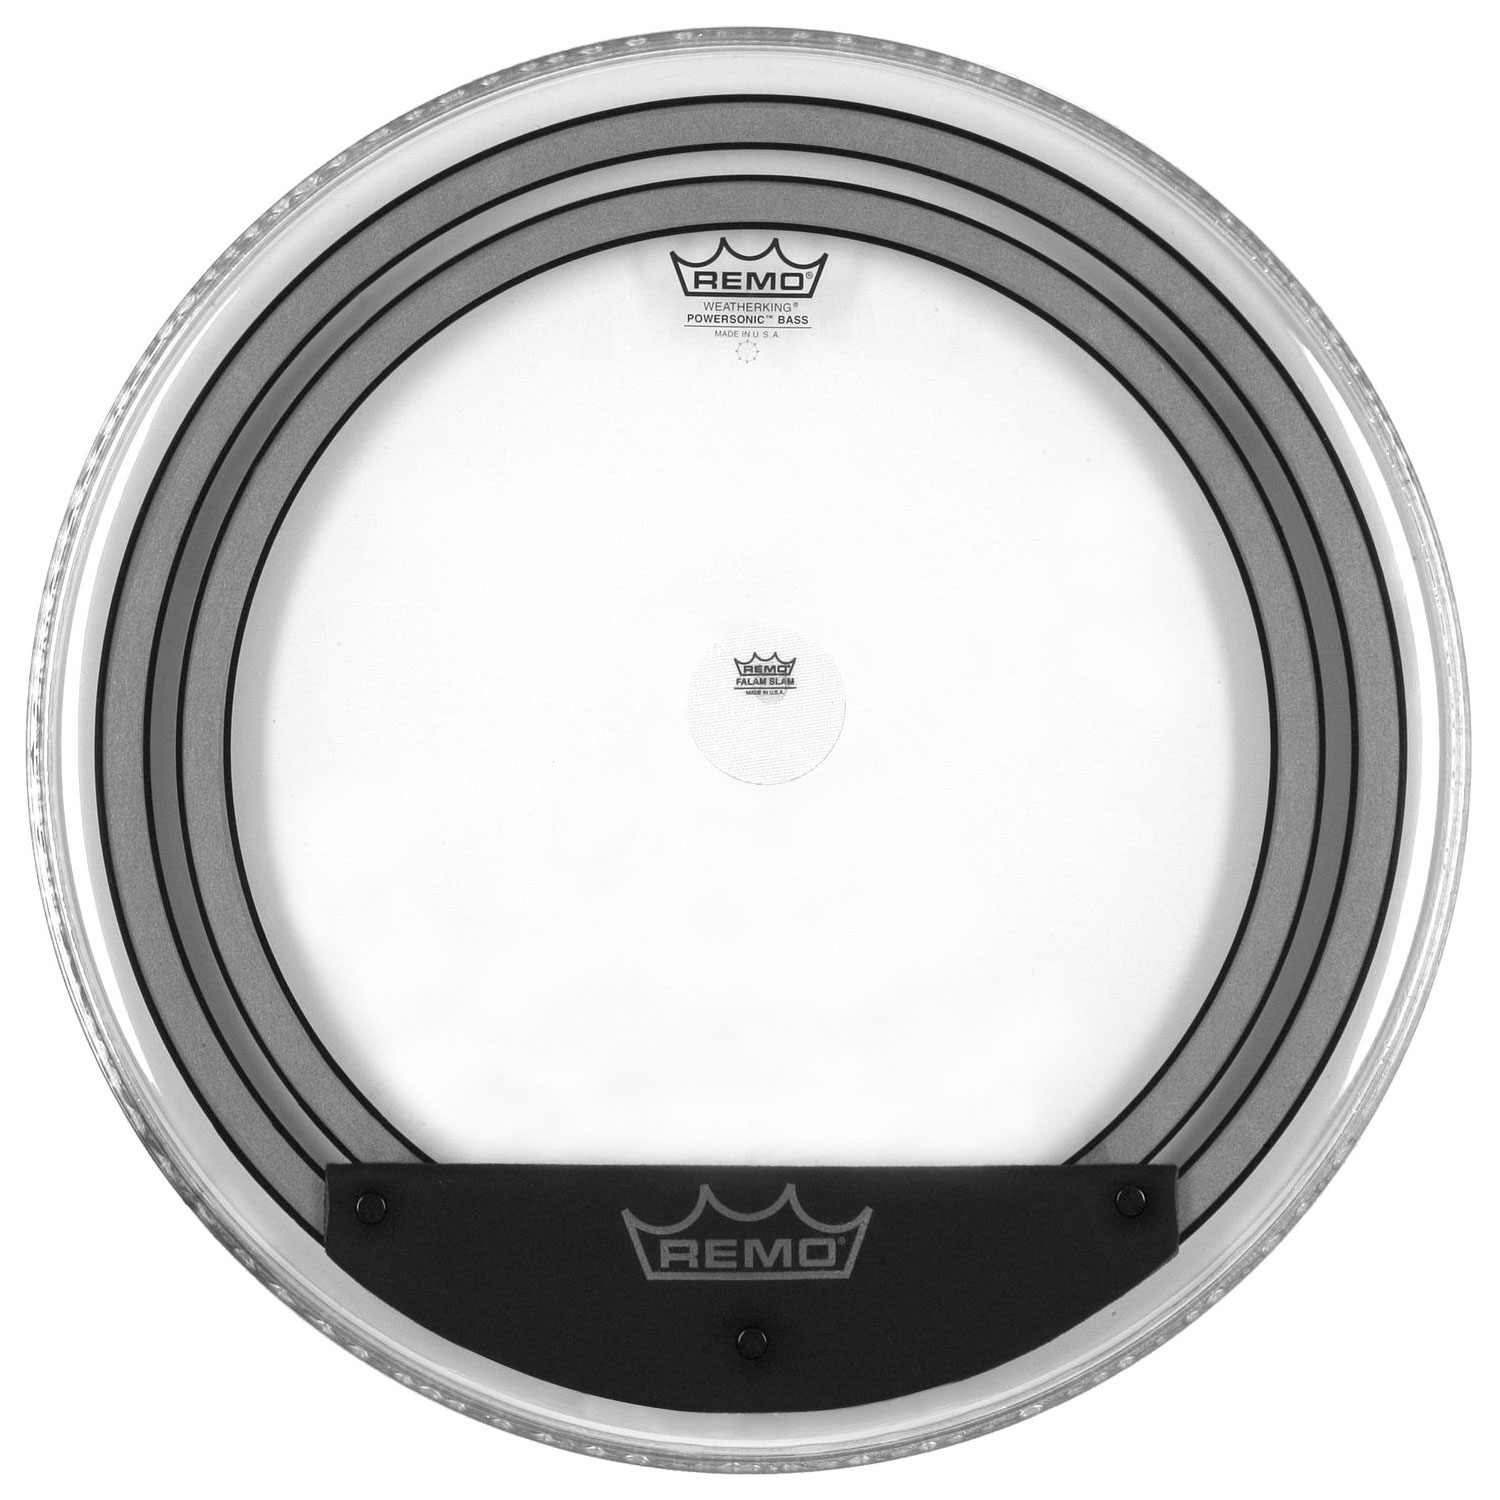 remo 18 powersonic clear bass drum head pw 1318 00. Black Bedroom Furniture Sets. Home Design Ideas